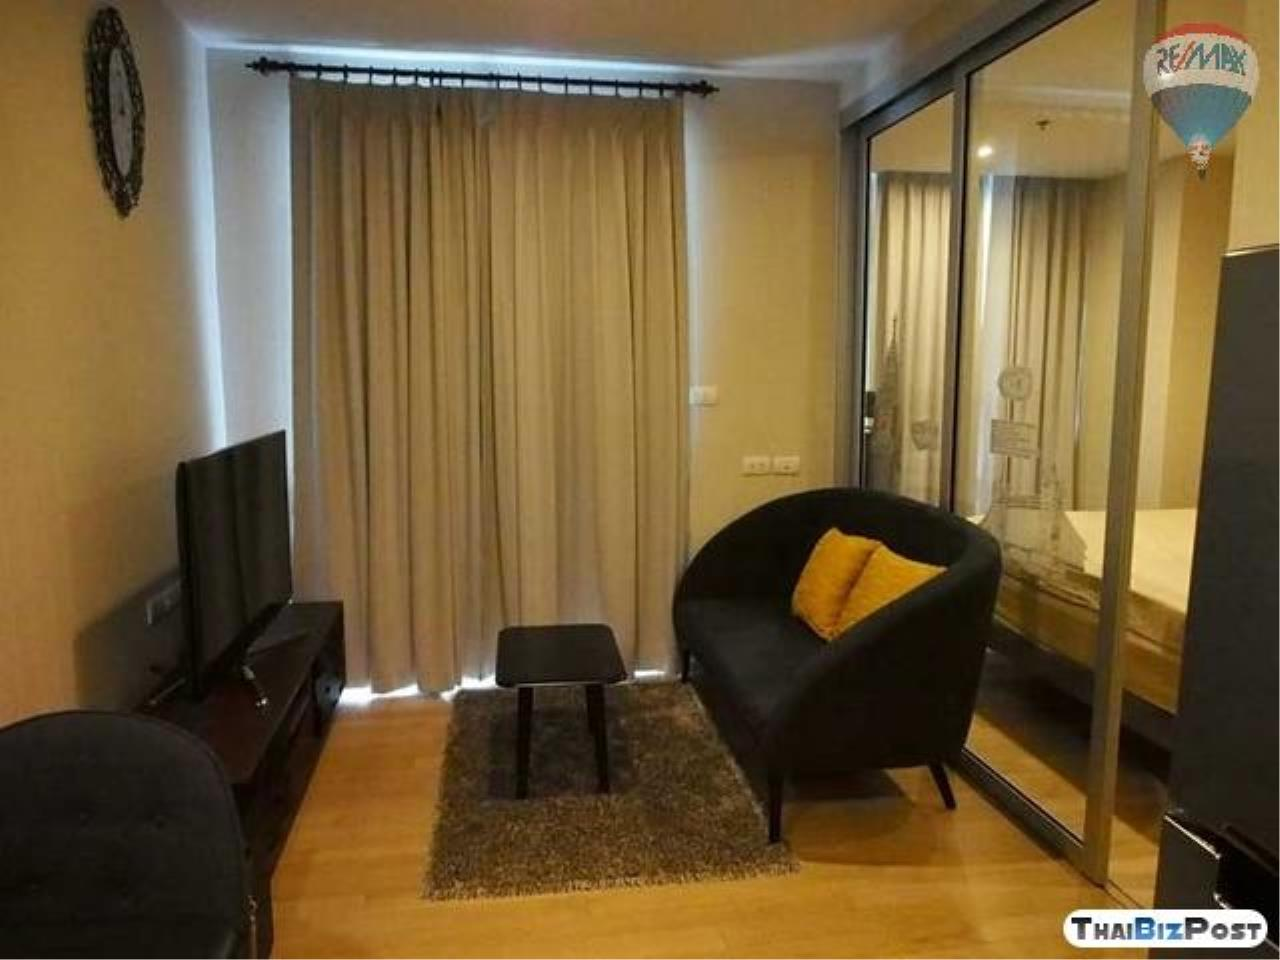 RE/MAX BestLife Agency's condo for rent HAUSE 23 ladprao 23 6